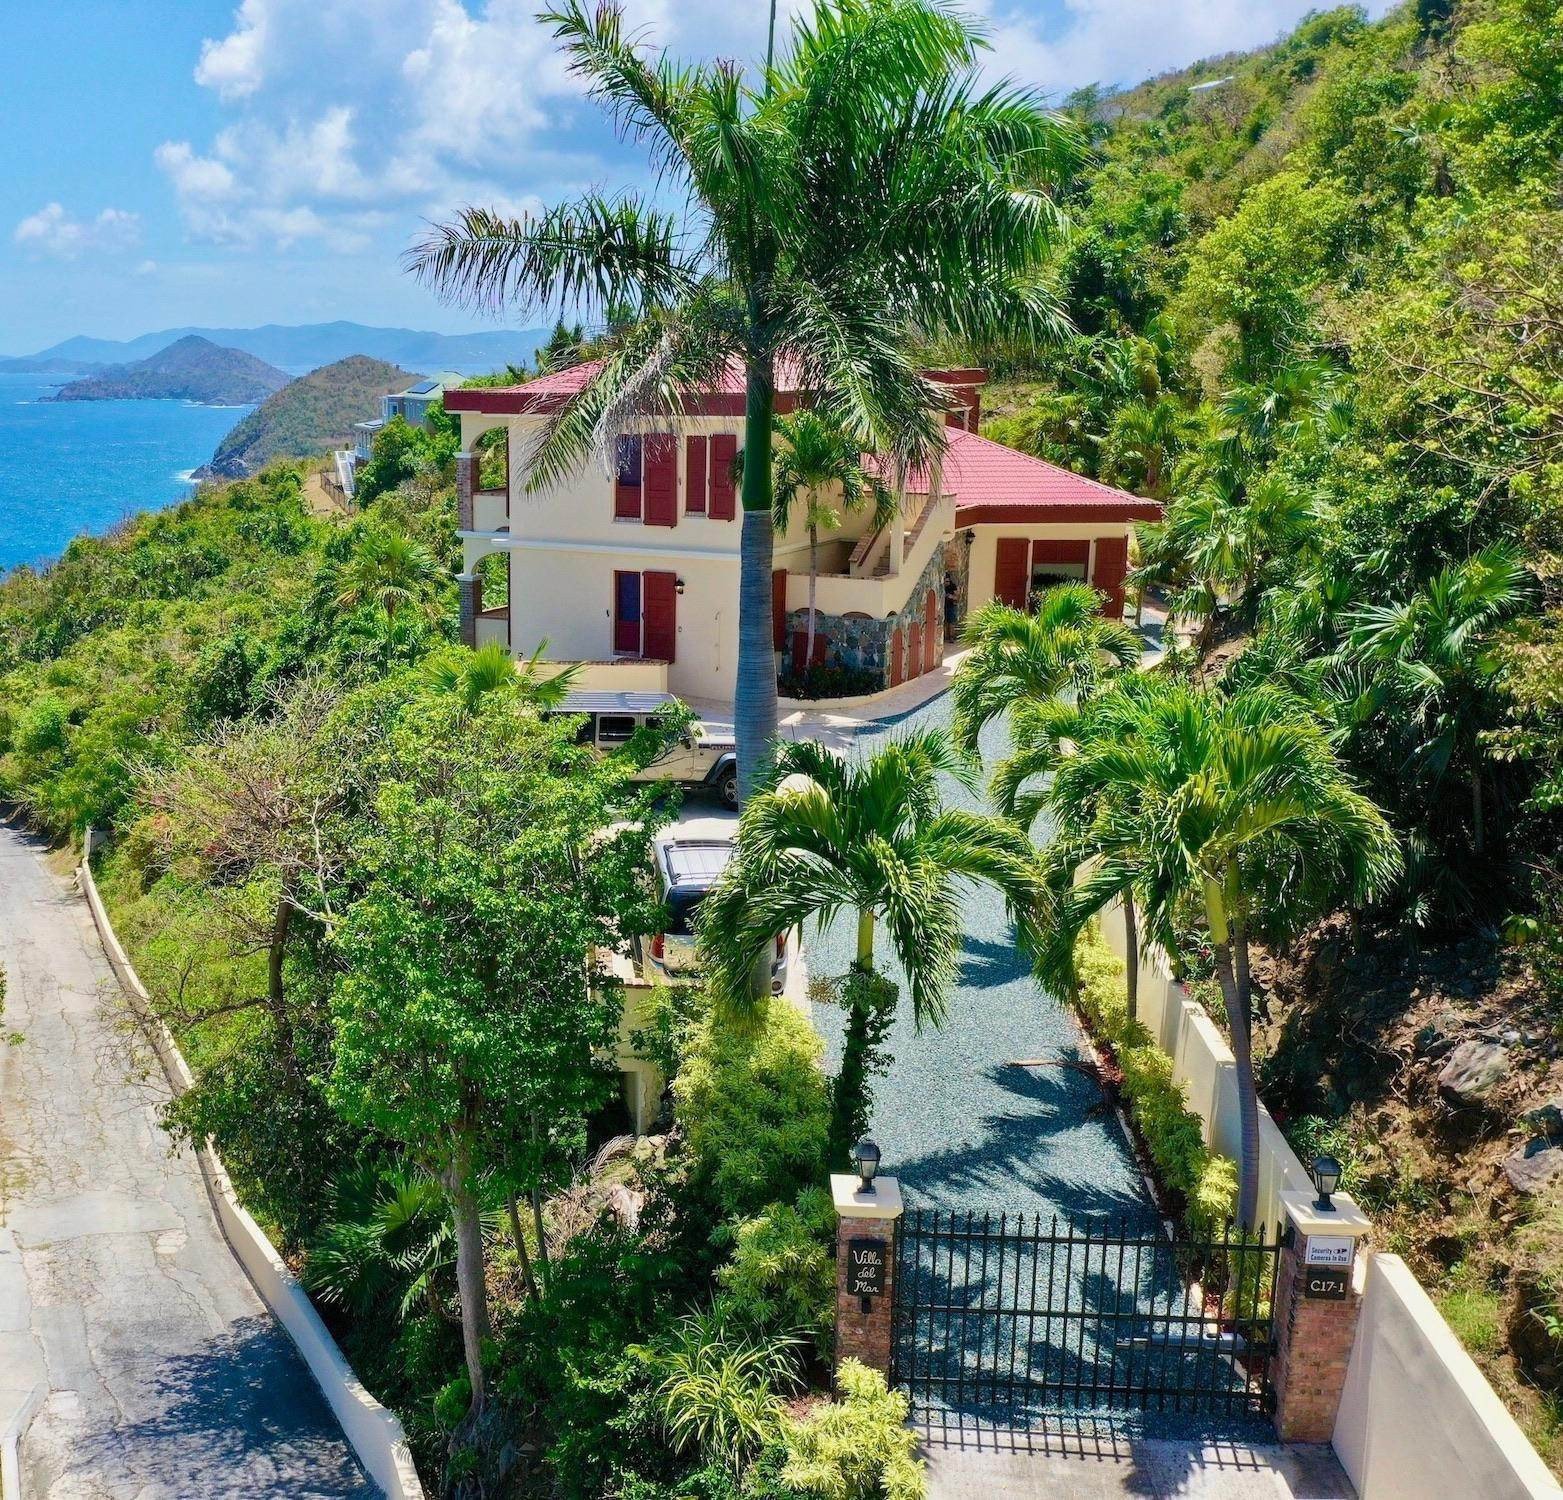 Single Family Homes for Sale at C-17-1 Lovenlund GNS St Thomas, Virgin Islands 00802 United States Virgin Islands